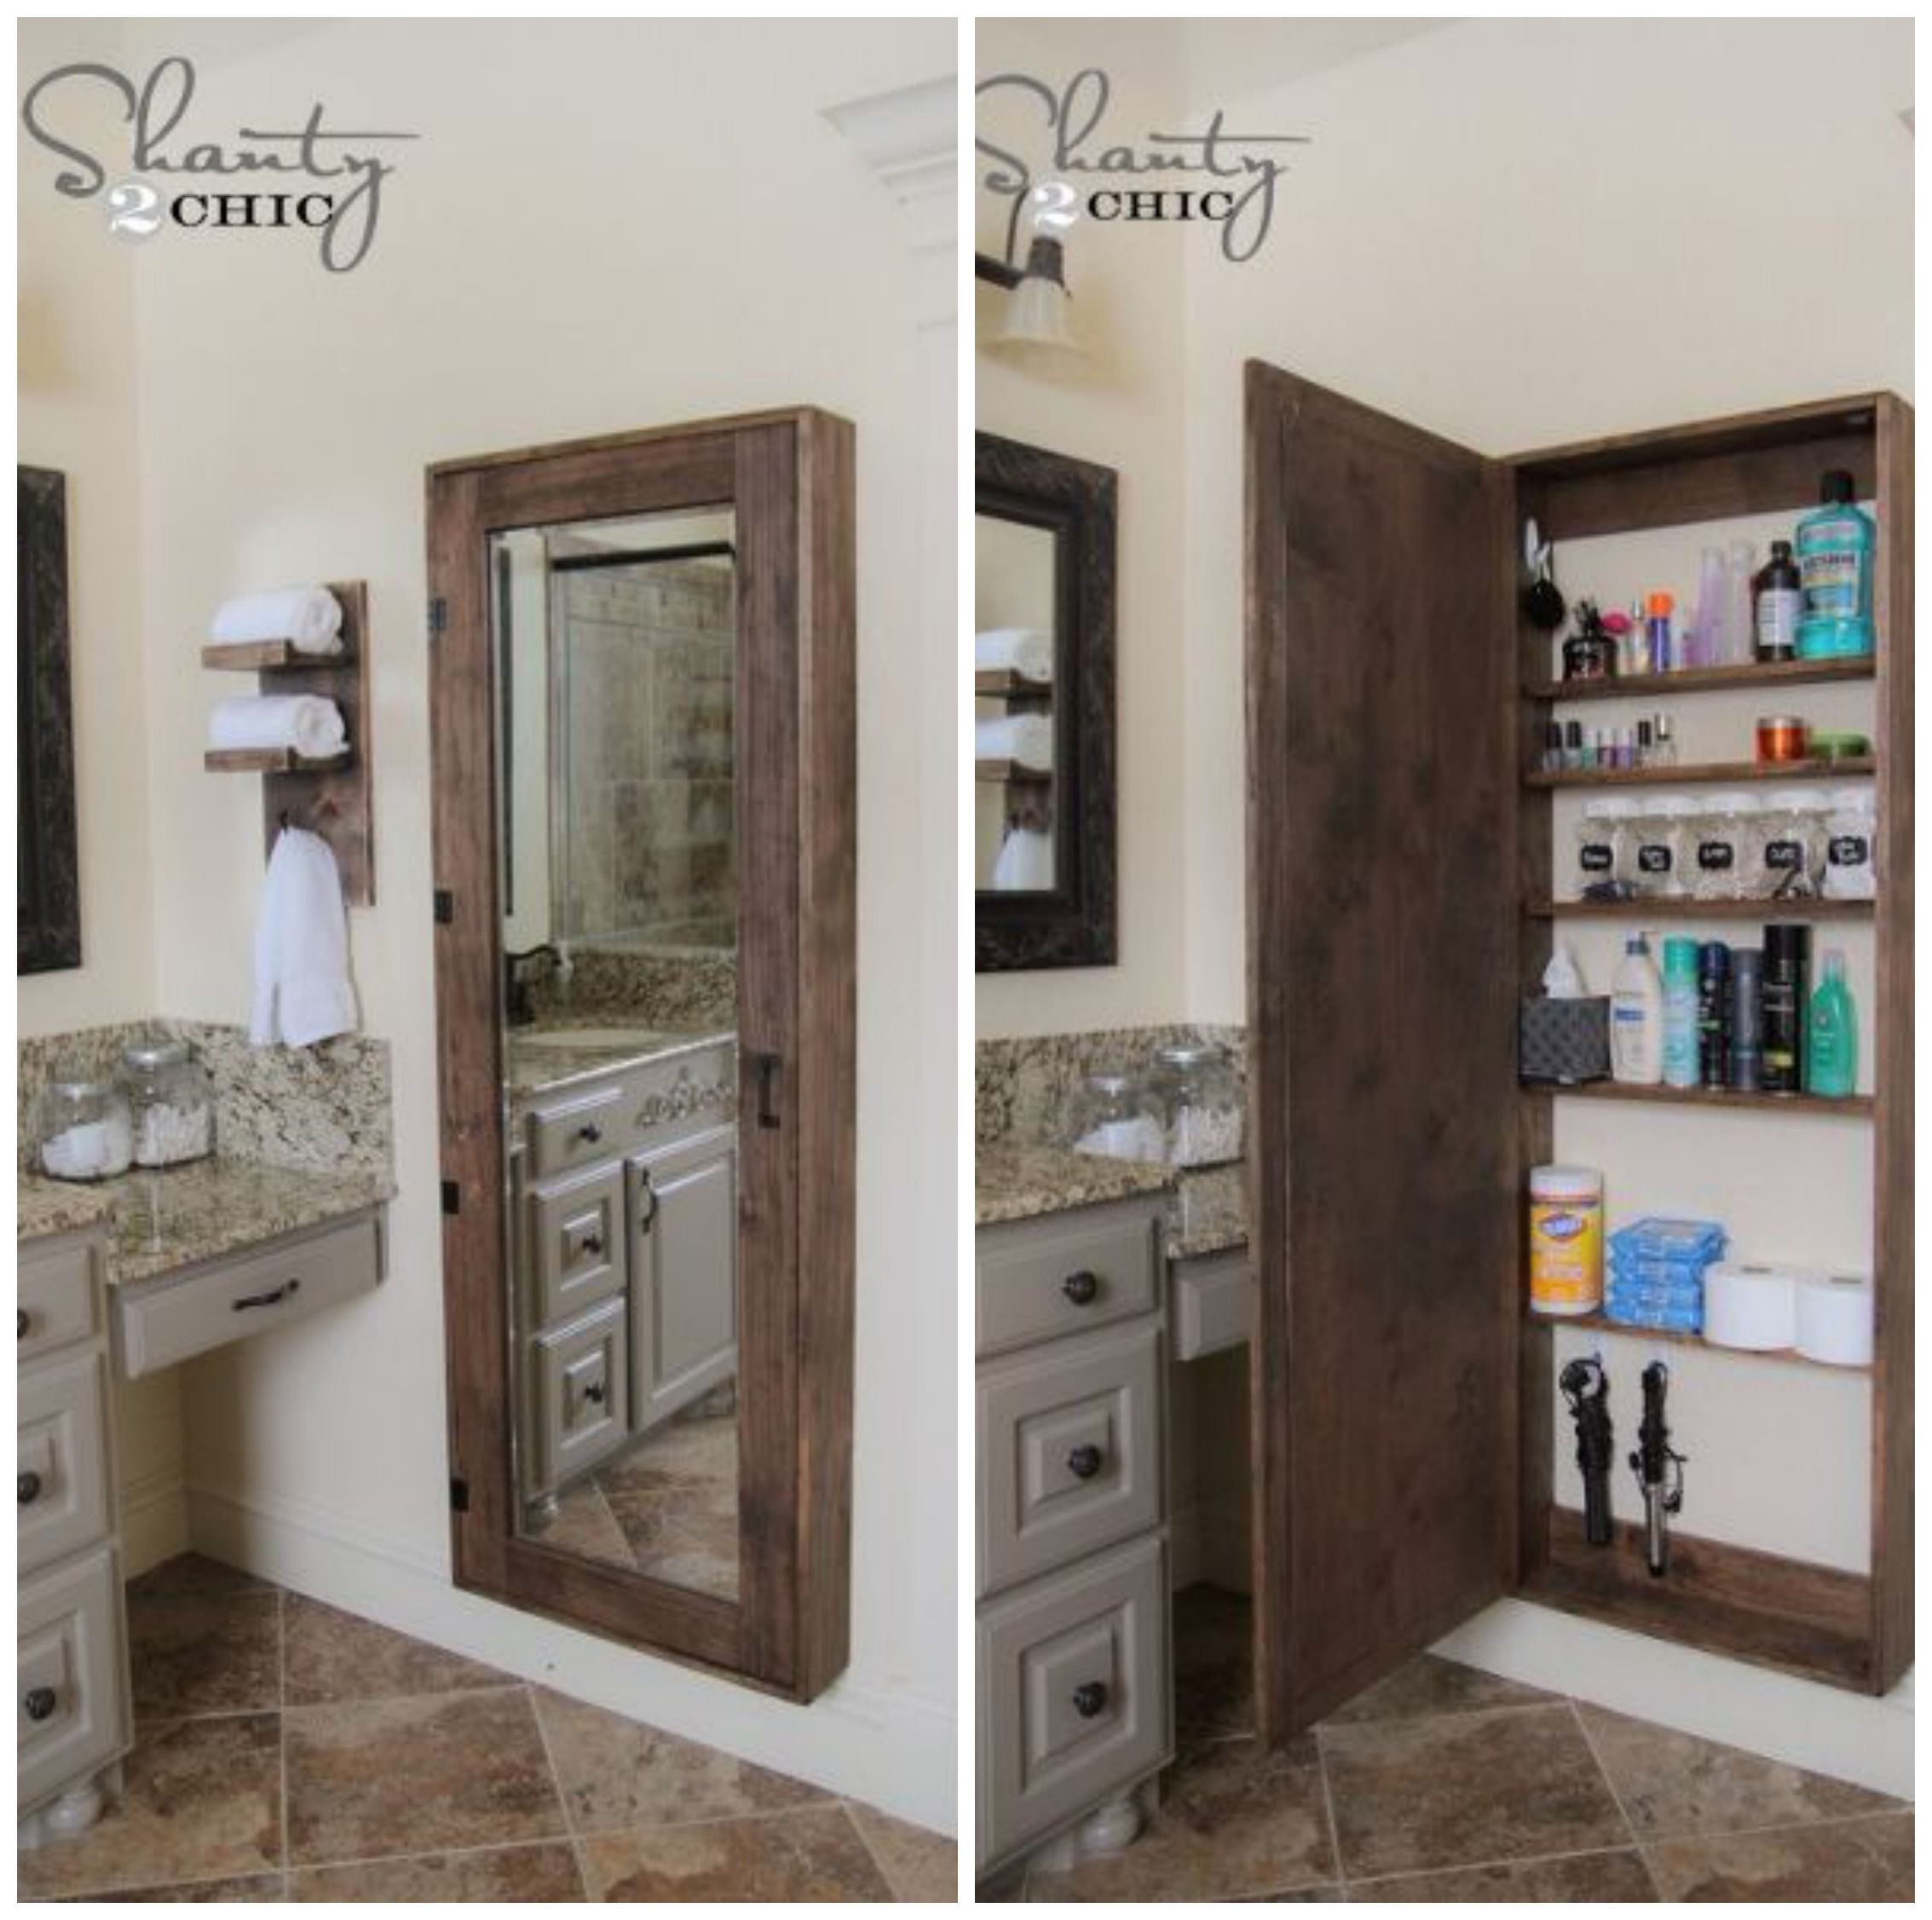 Diy Bathroom Storage Cabinet For The Home Bathroom within size 2267 X 2253